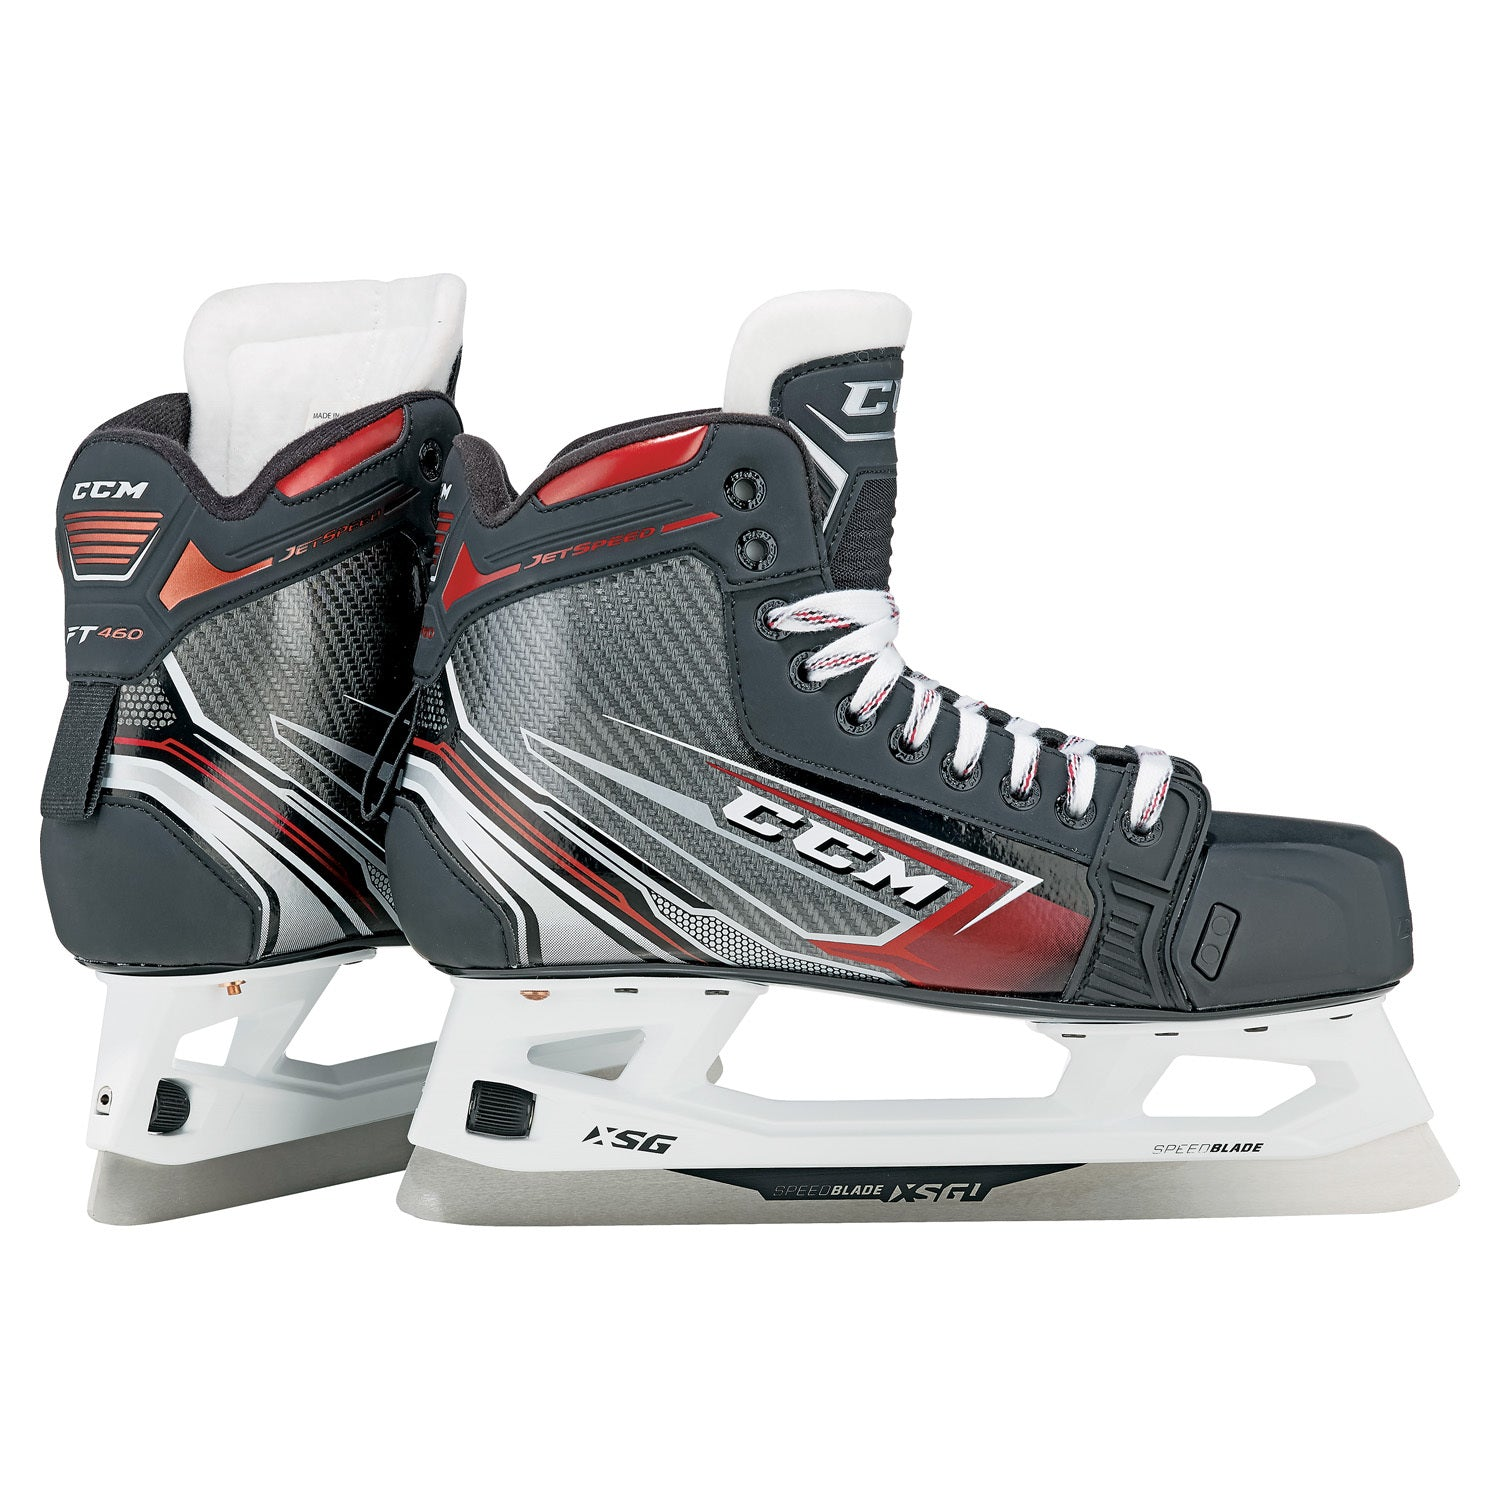 Jetspeed FT460 Jr